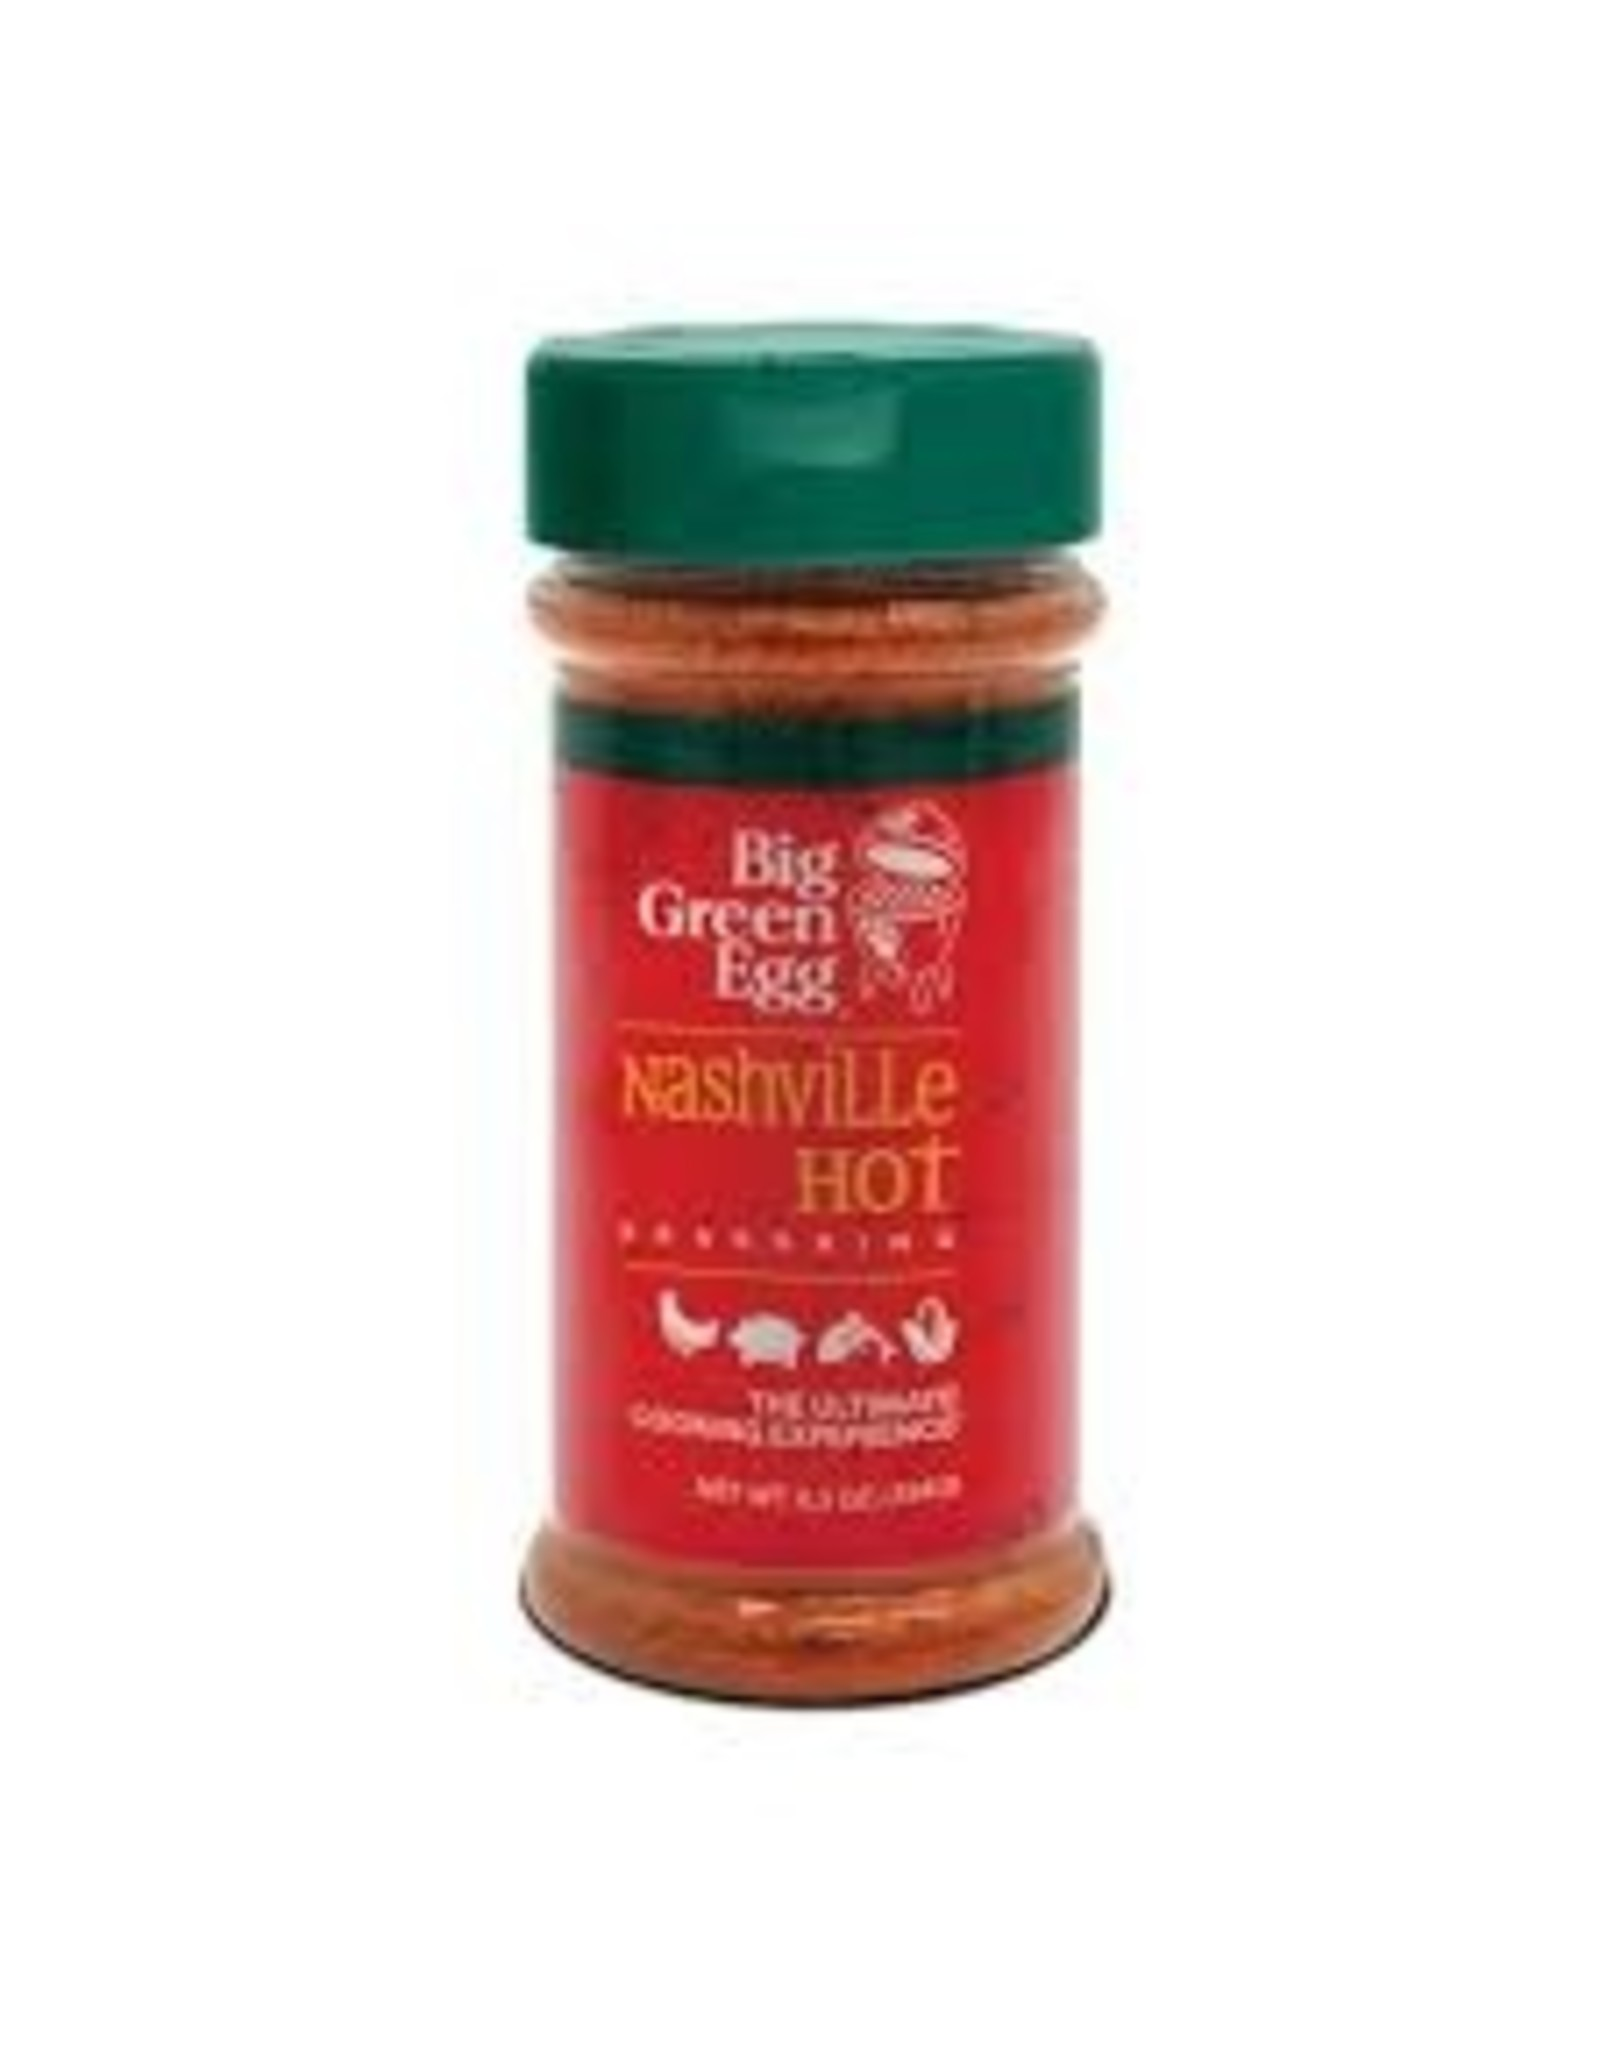 Big Green Egg BGE Nashville Hot Seasoning